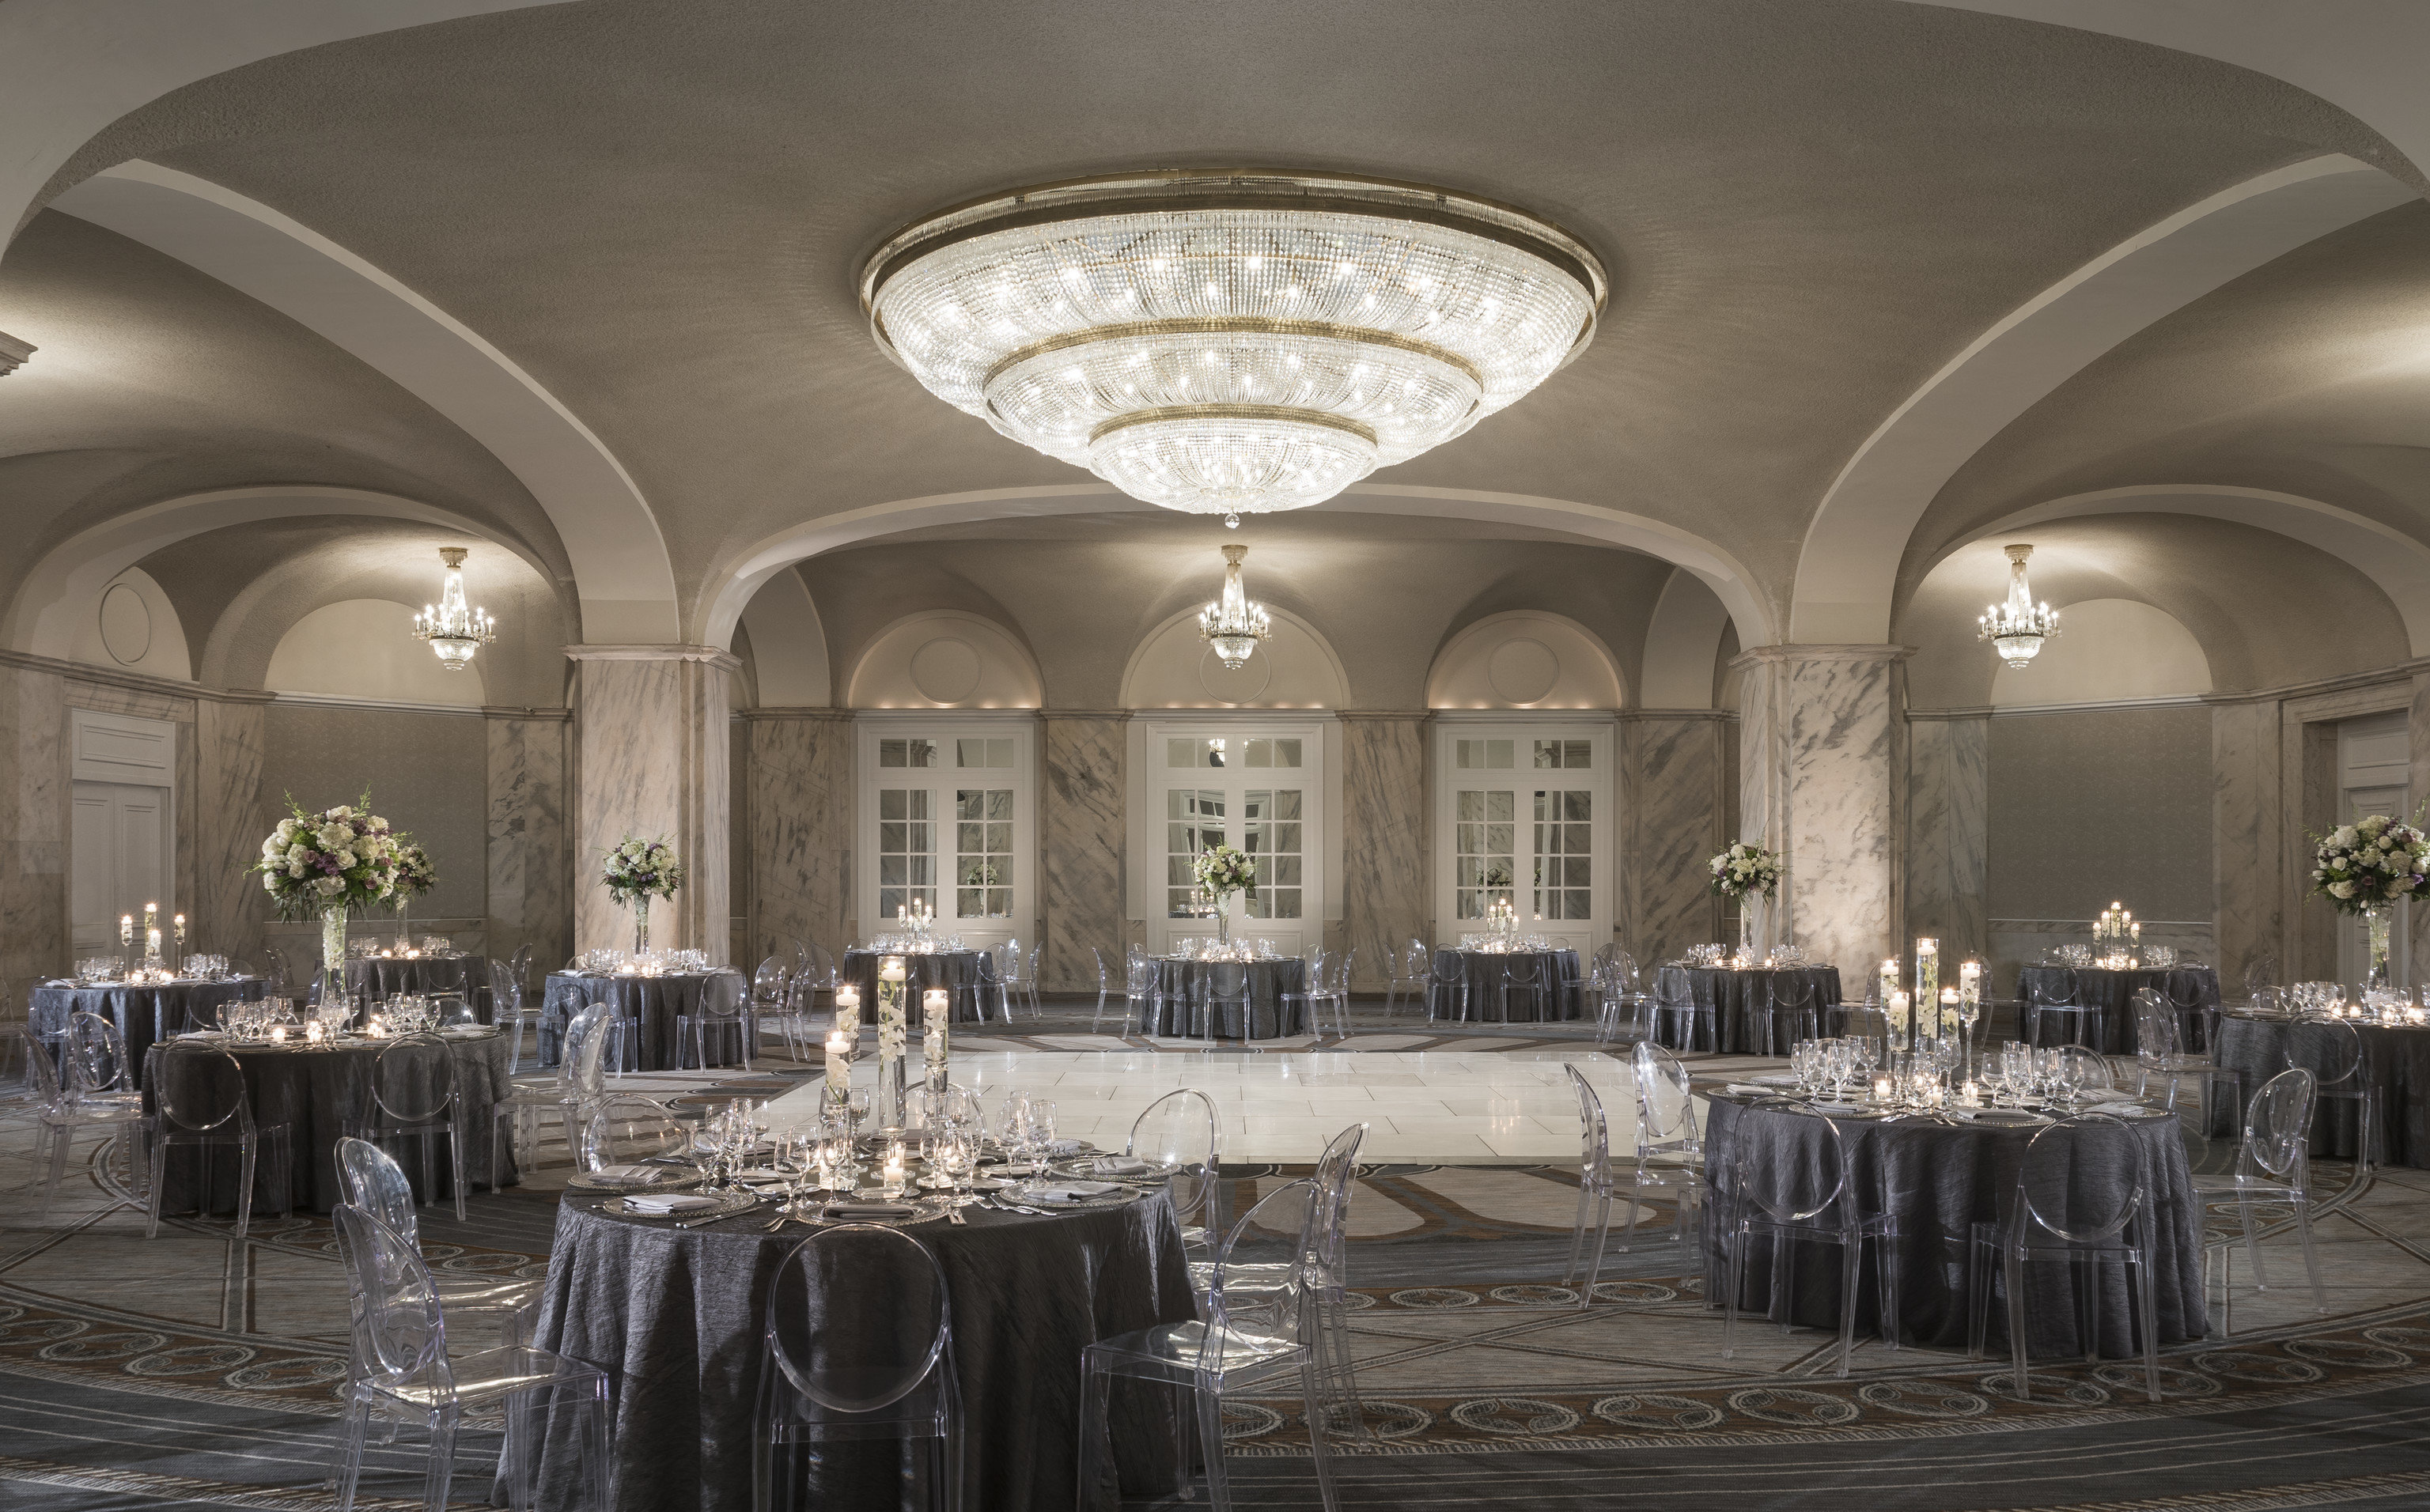 function hall ballroom aisle old ceremony arch wedding reception banquet chapel restaurant hall Dining centrepiece antique fancy set